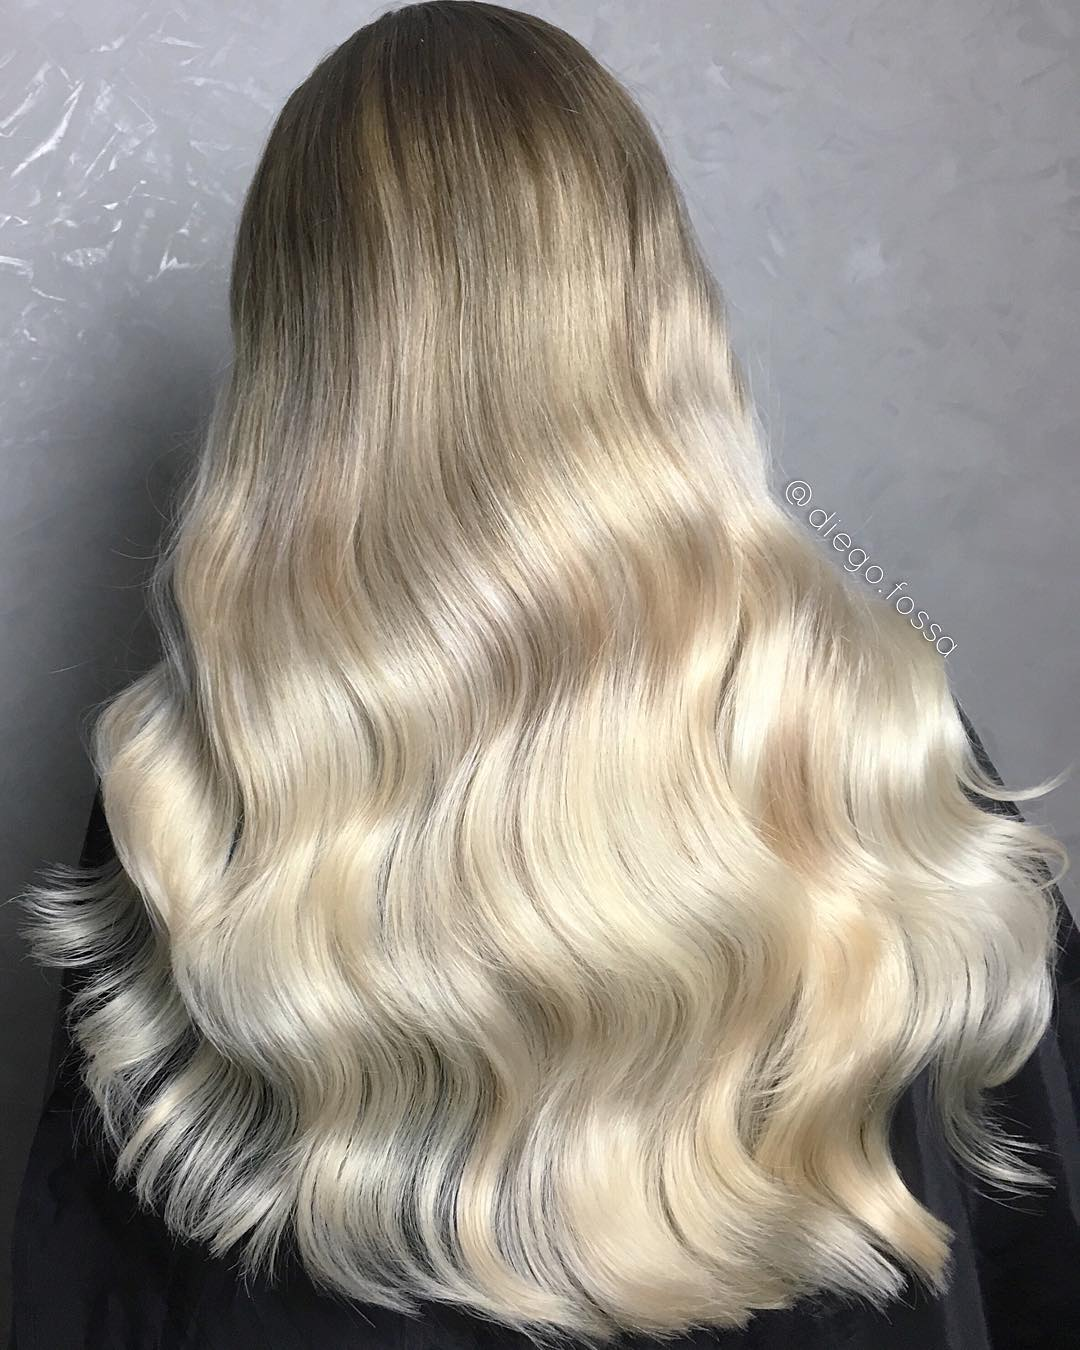 24 Best Hair Colors for Spring-Summer Season 2019 recommendations